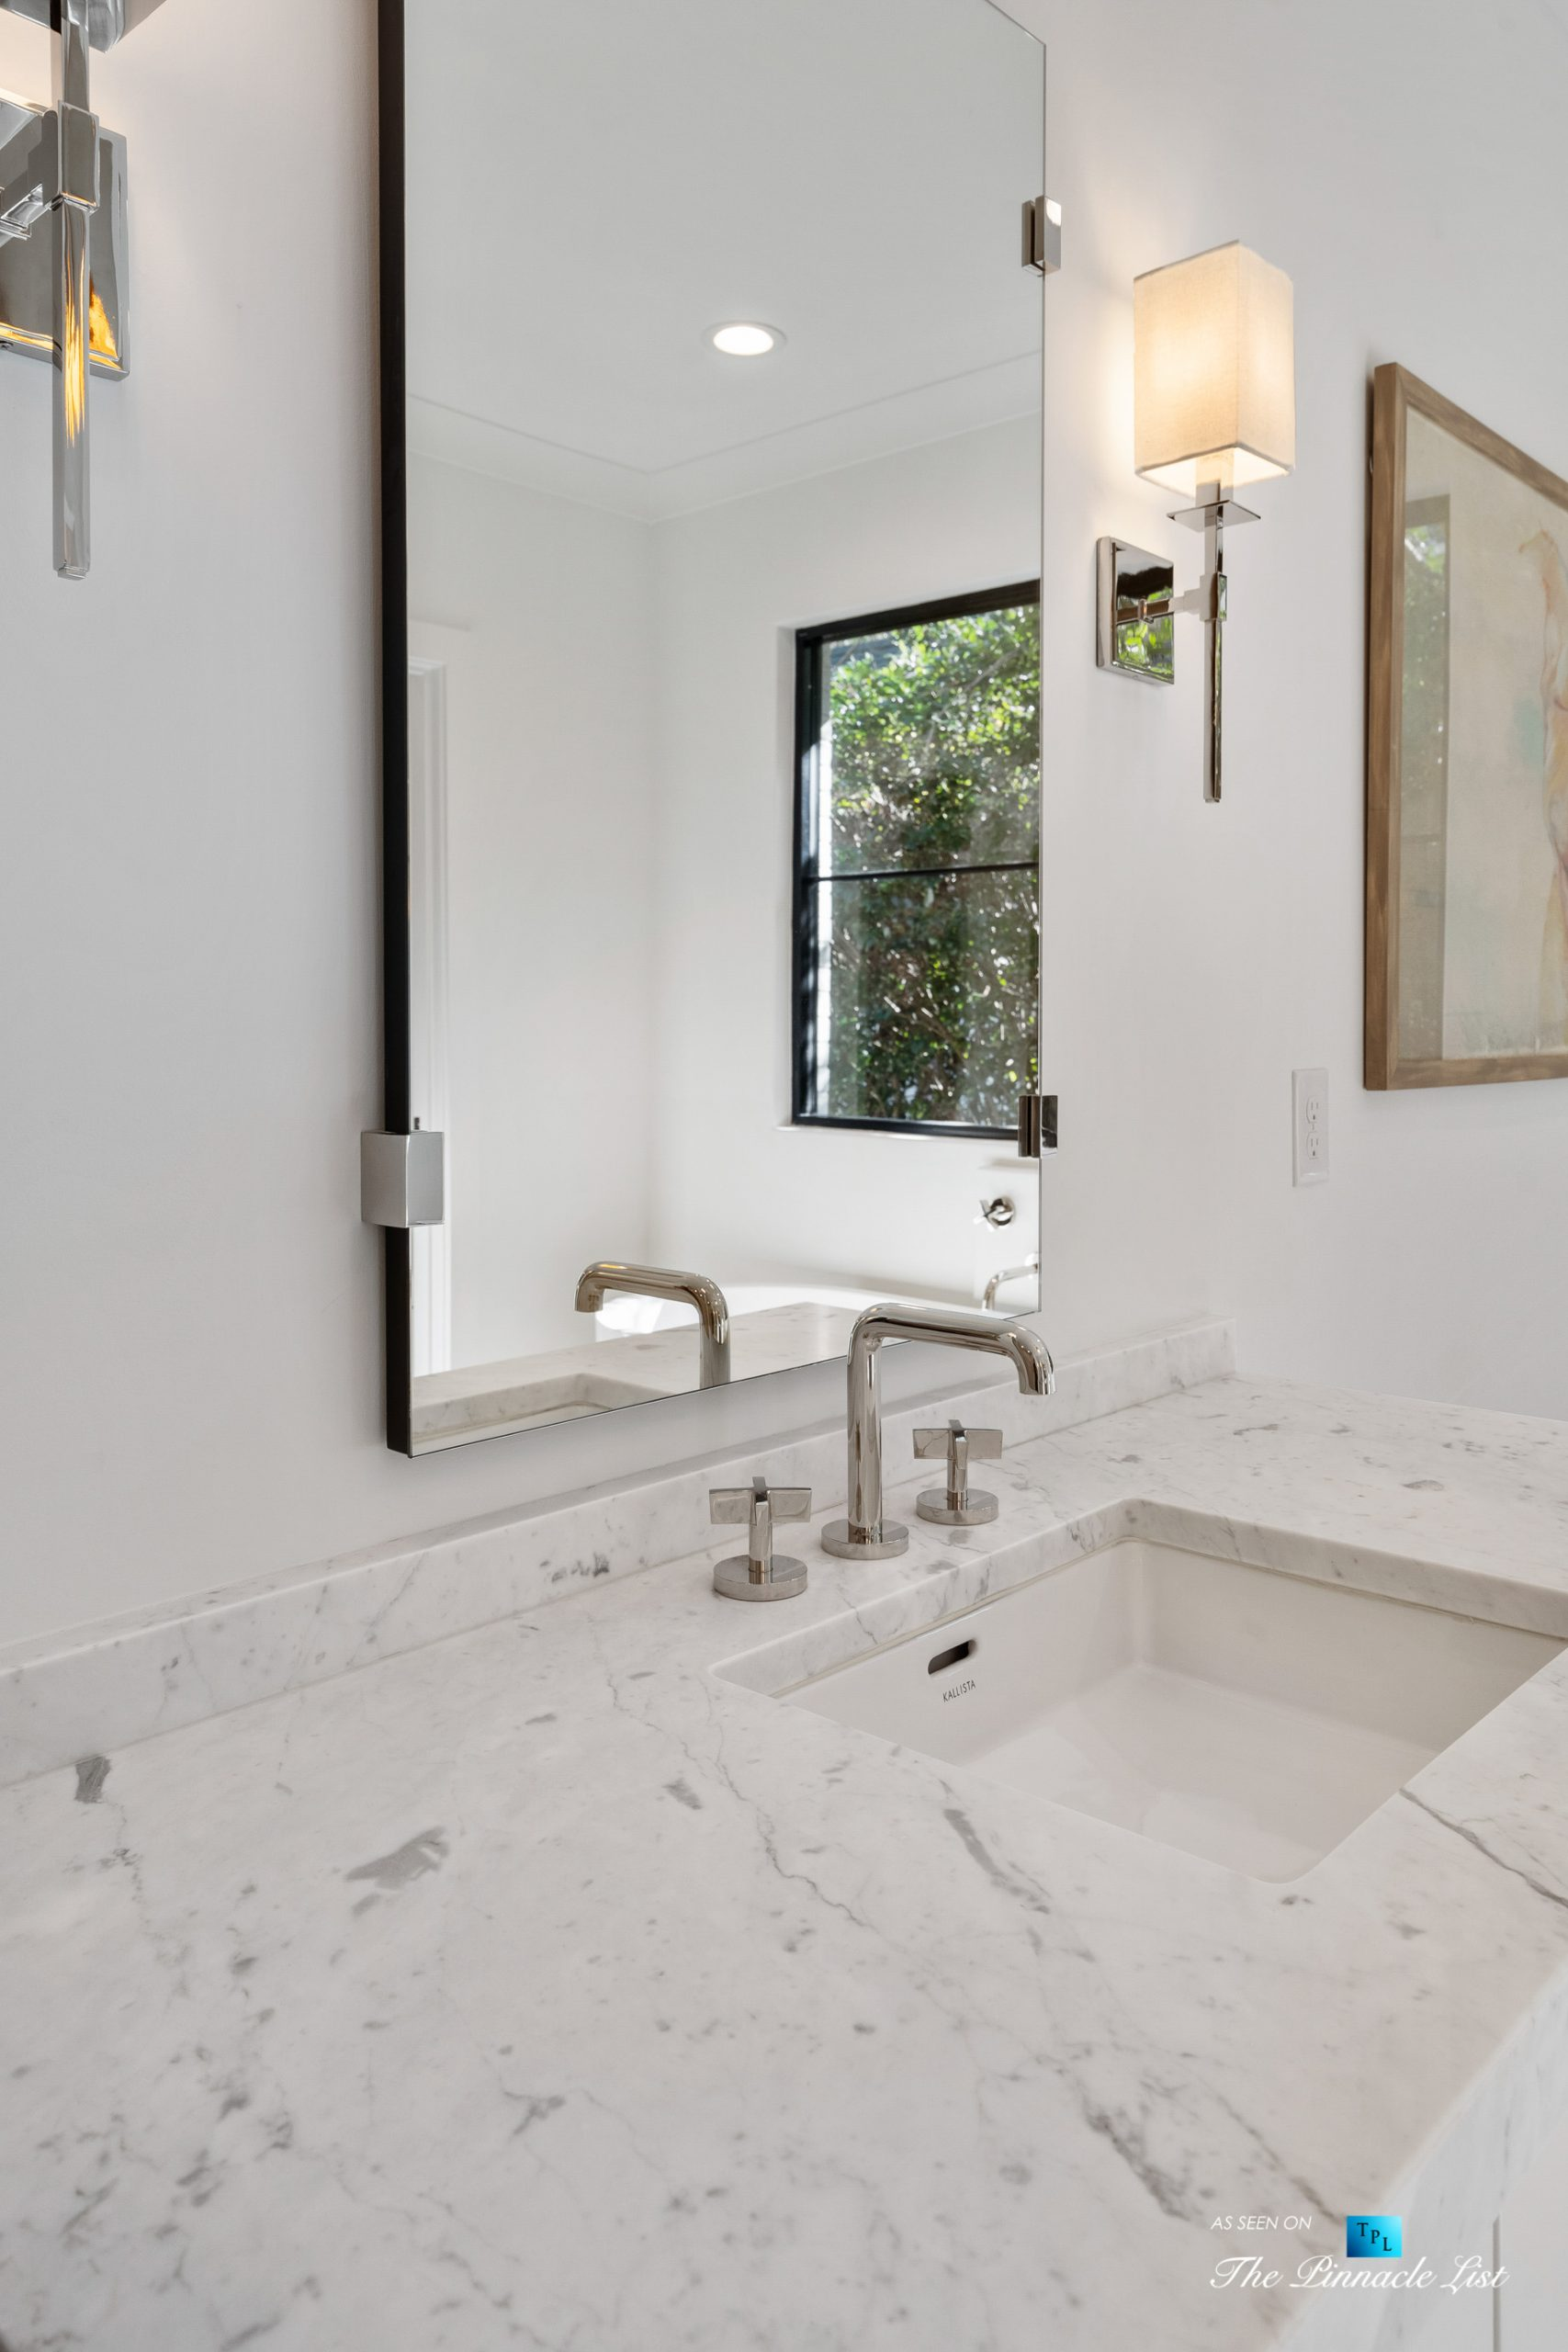 447 Valley Rd NW, Atlanta, GA, USA – Master Bathroom Sink Faucet – Luxury Real Estate – Tuxedo Park Home